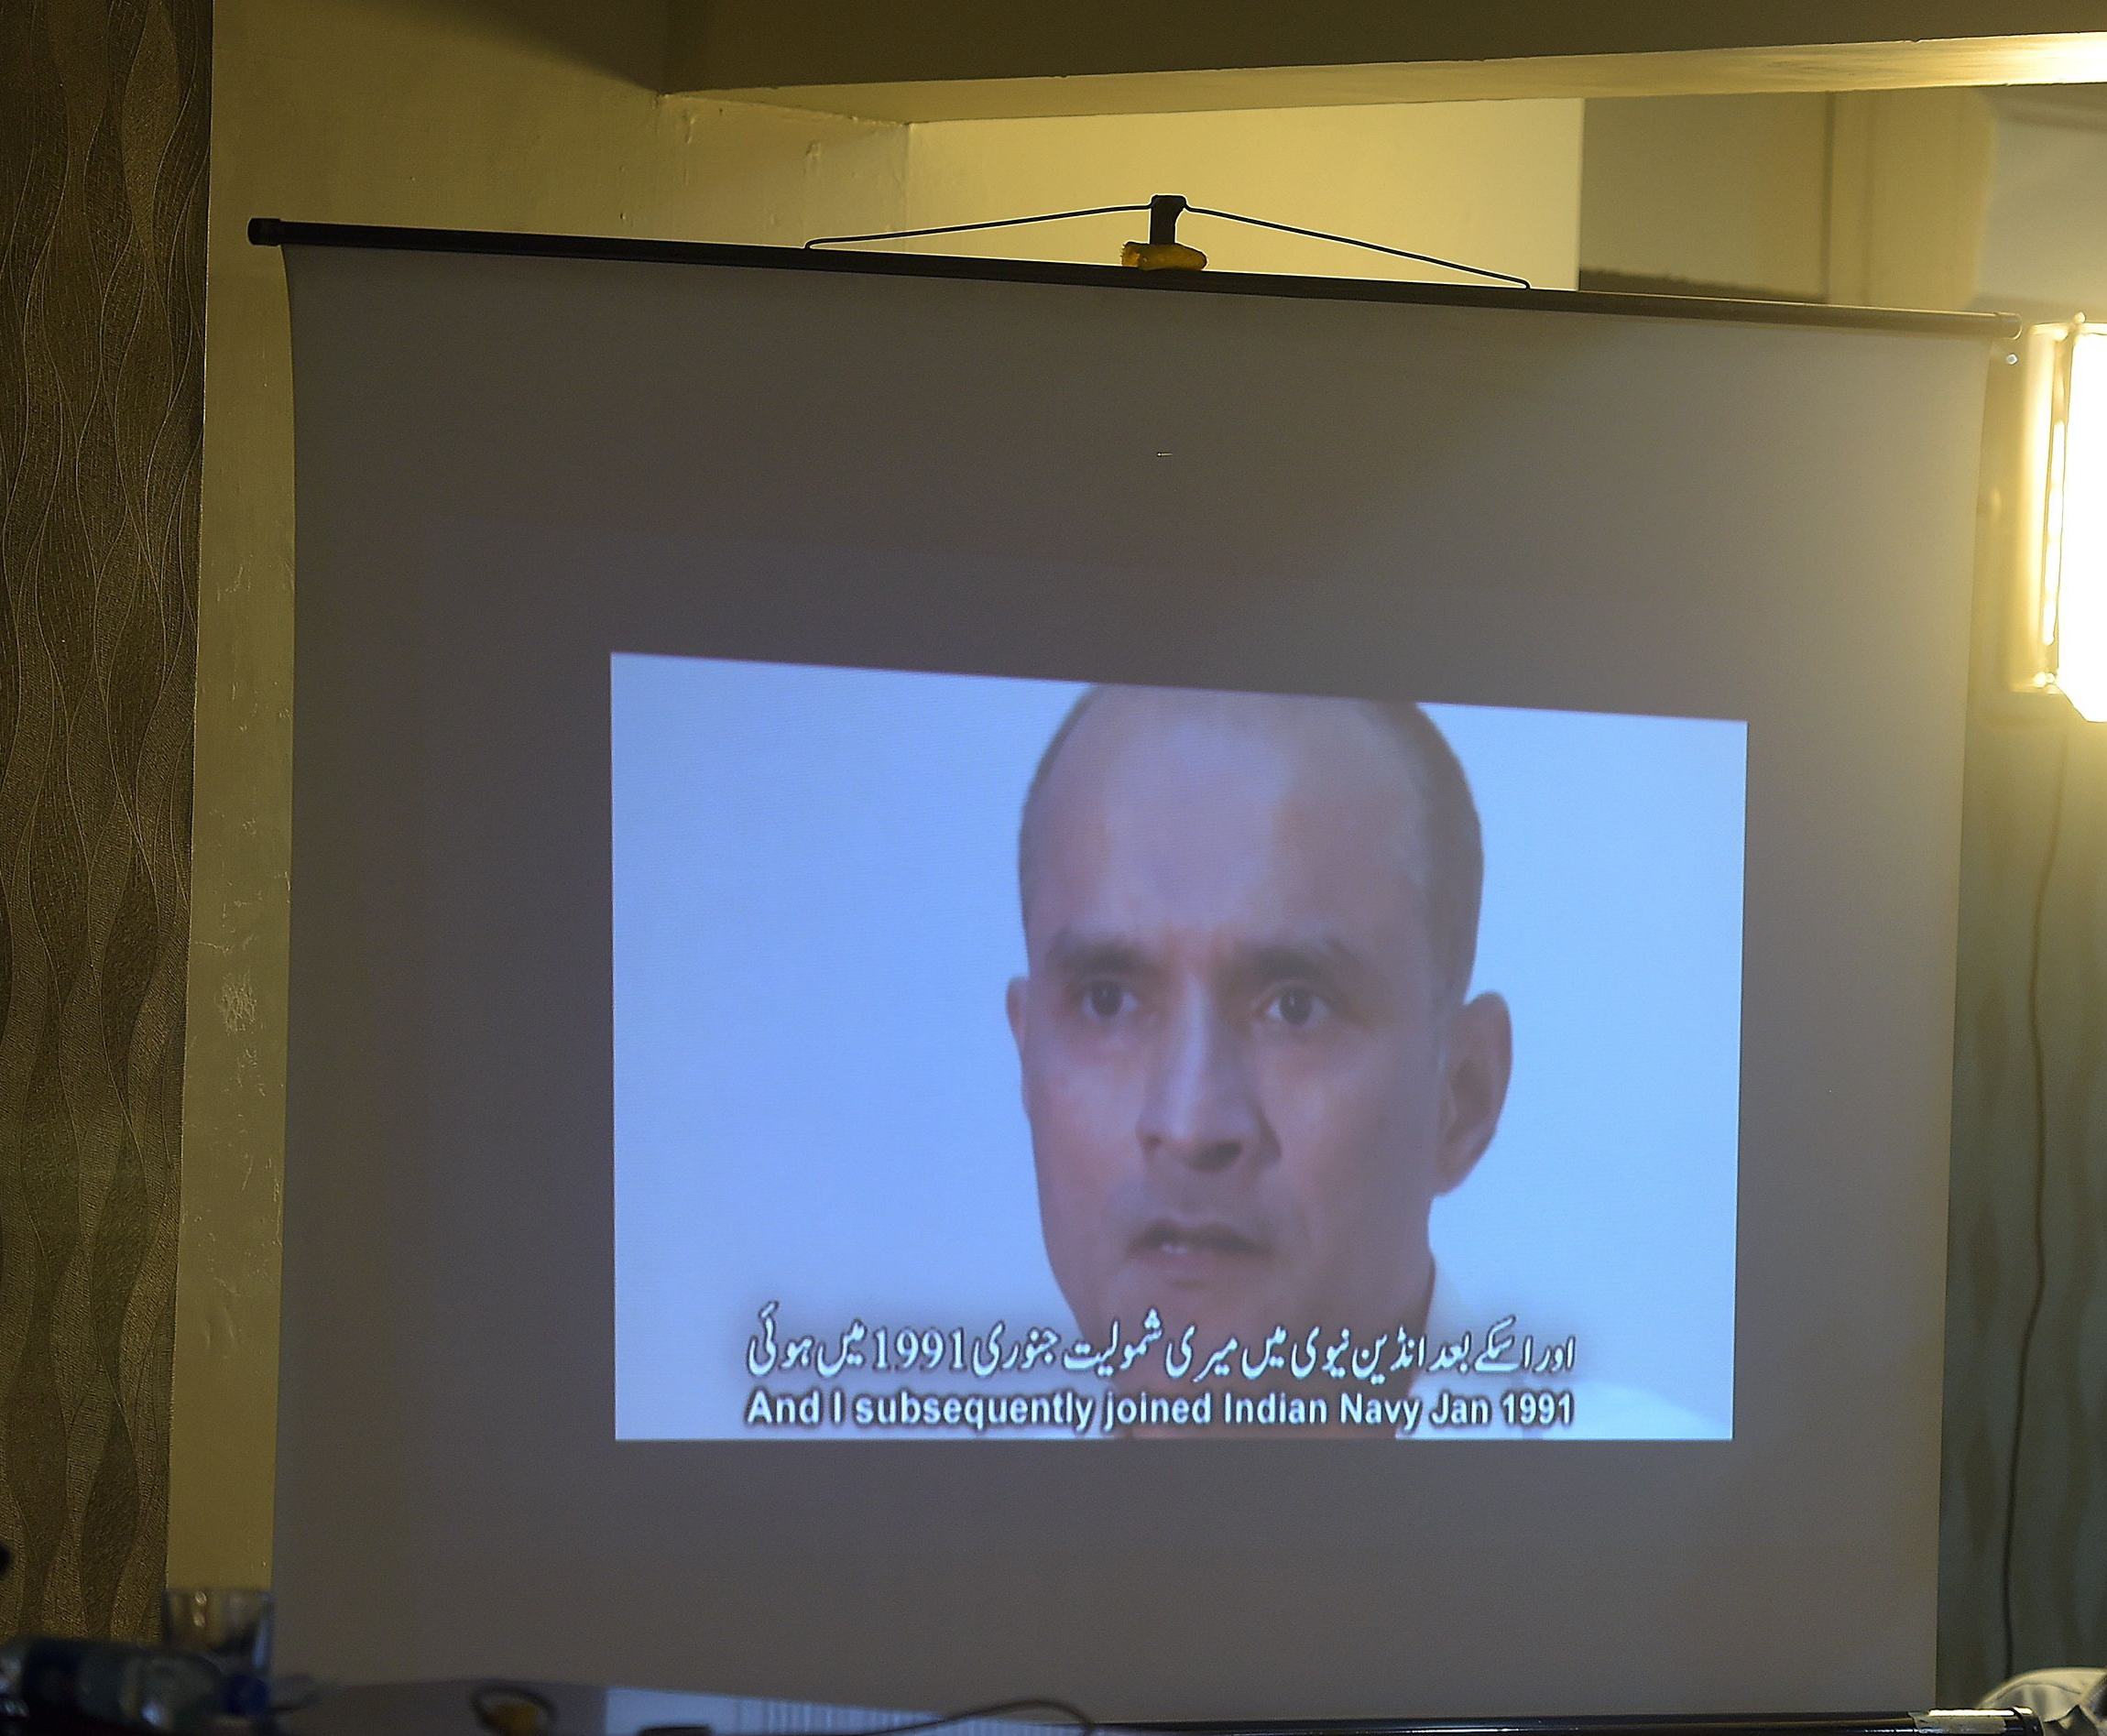 Video shows Kulbhushan Yadav, who is suspected of being an Indian spy, during a press conference in Islamabad on March 29, 2016. PHOTO: AFP